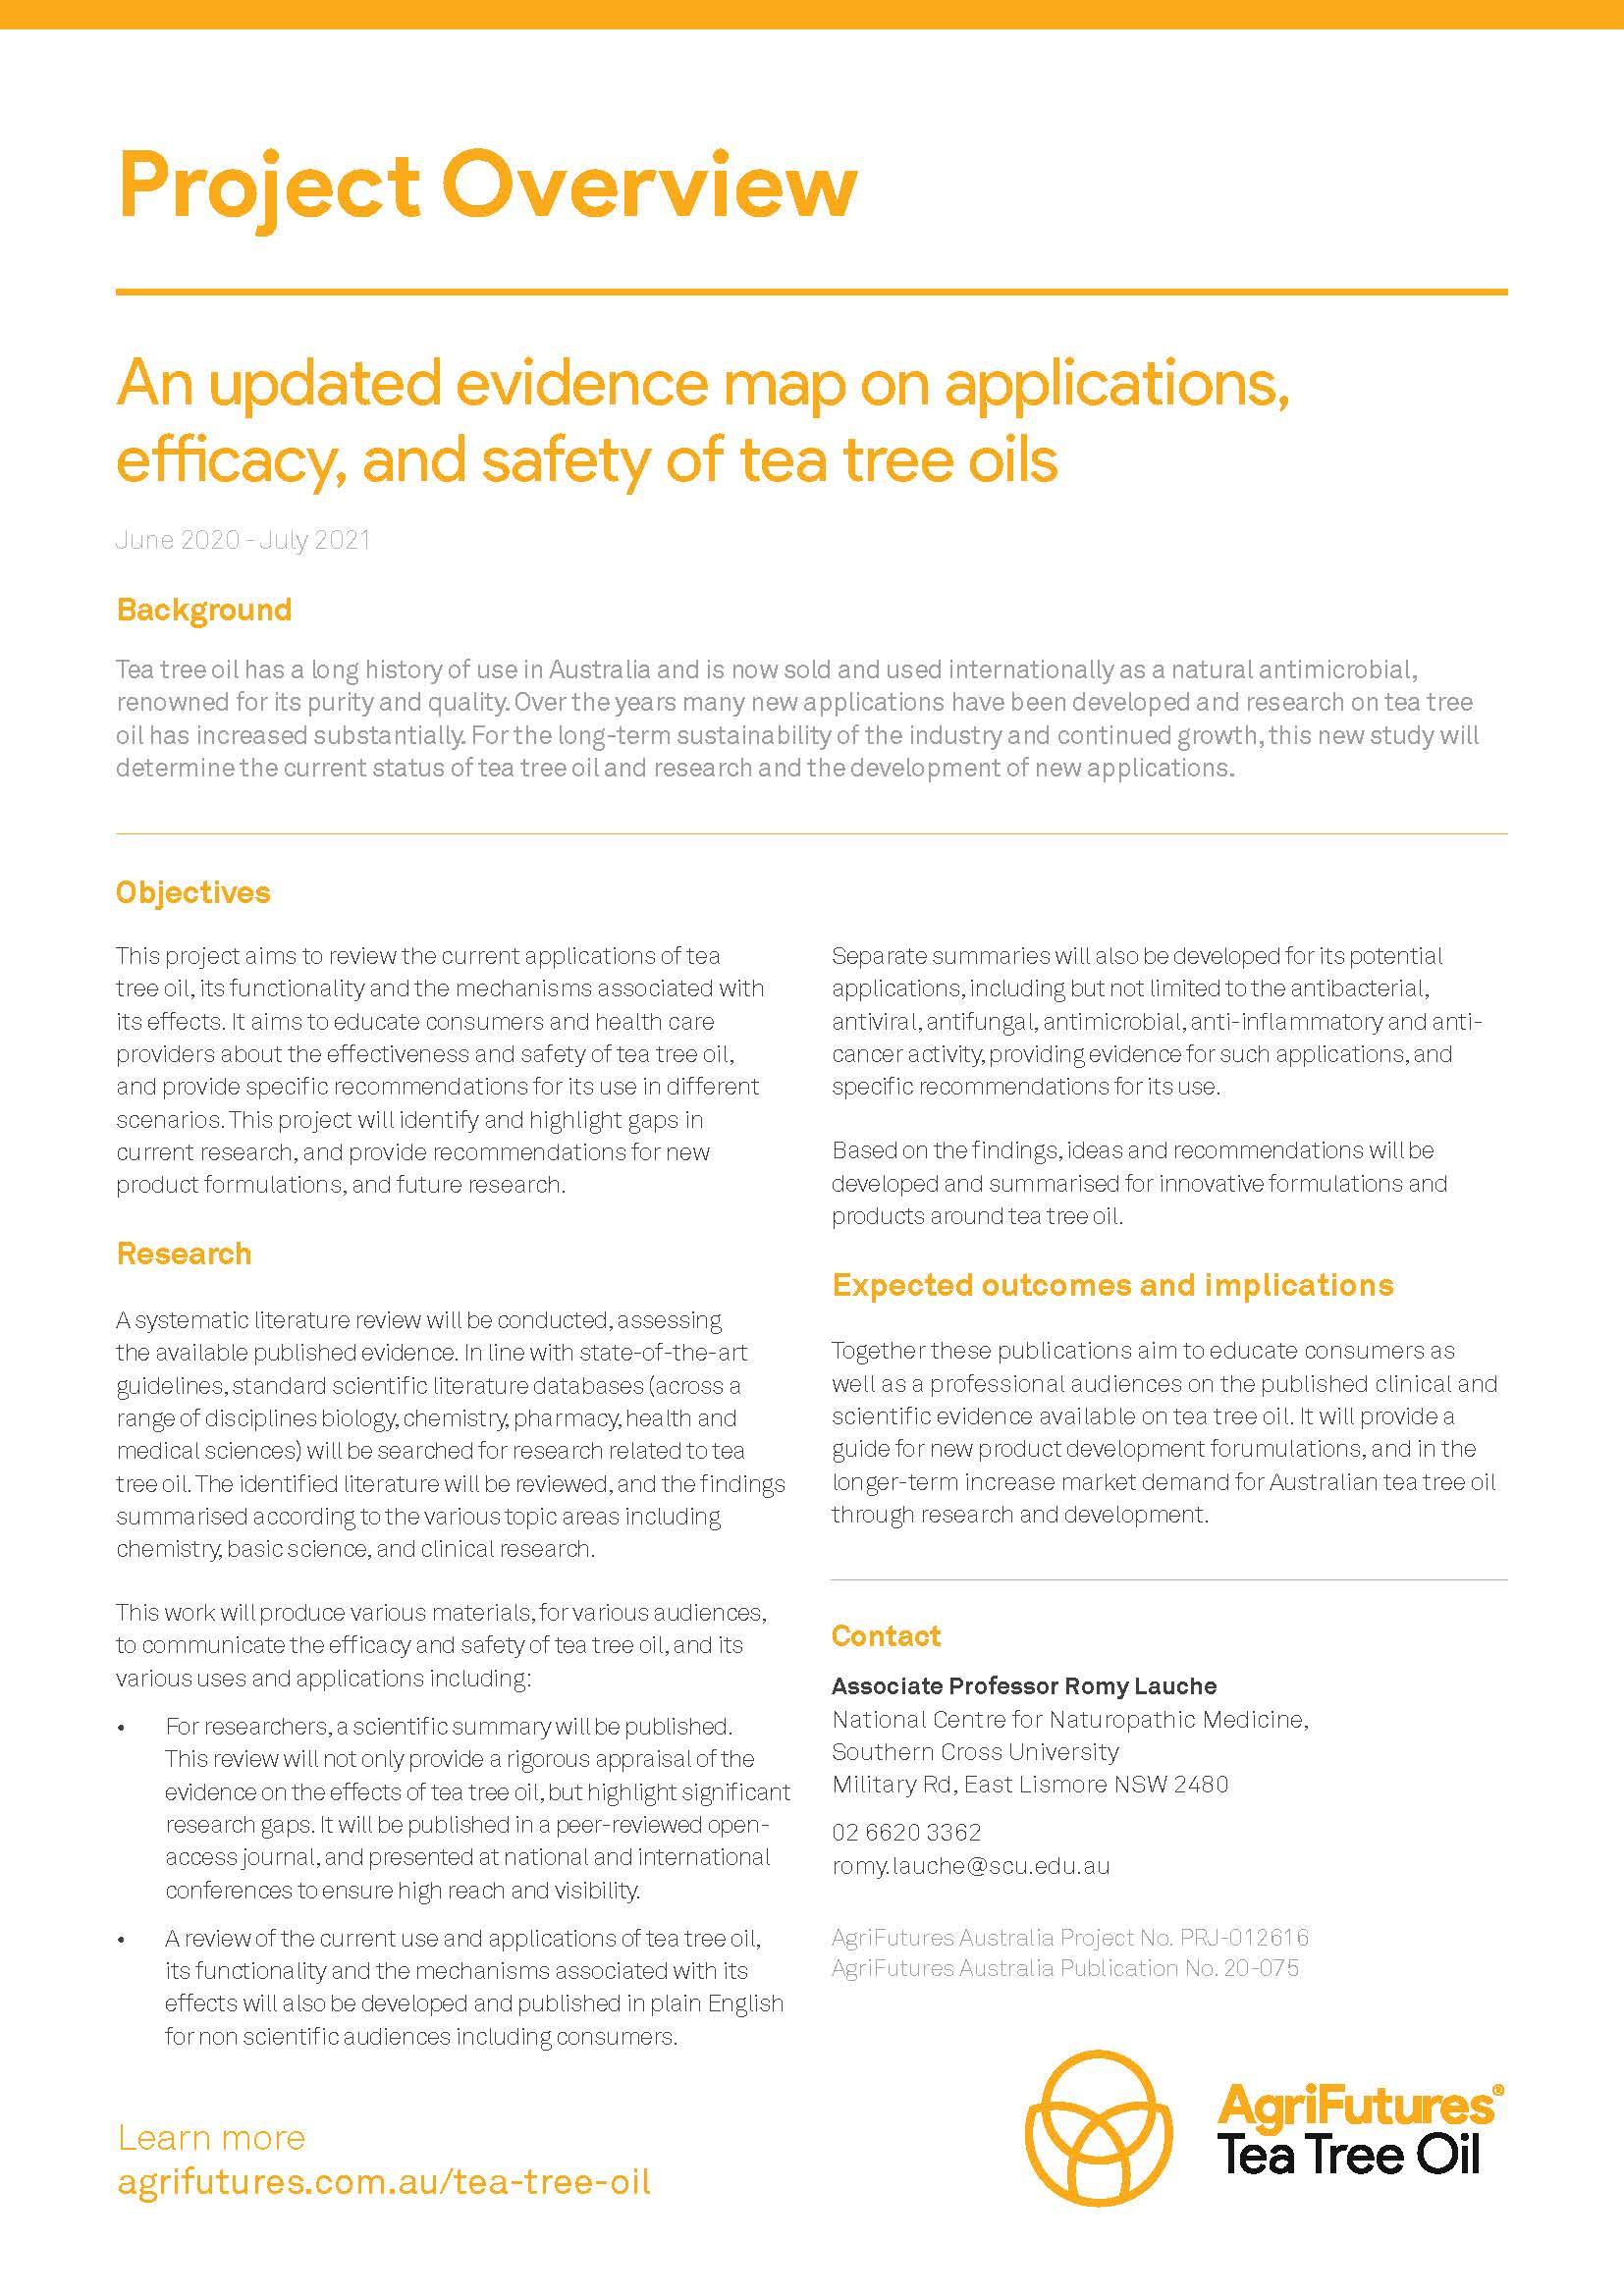 Project Summary: An updated evidence map on applications, efficacy, and safety of tea tree oils - image